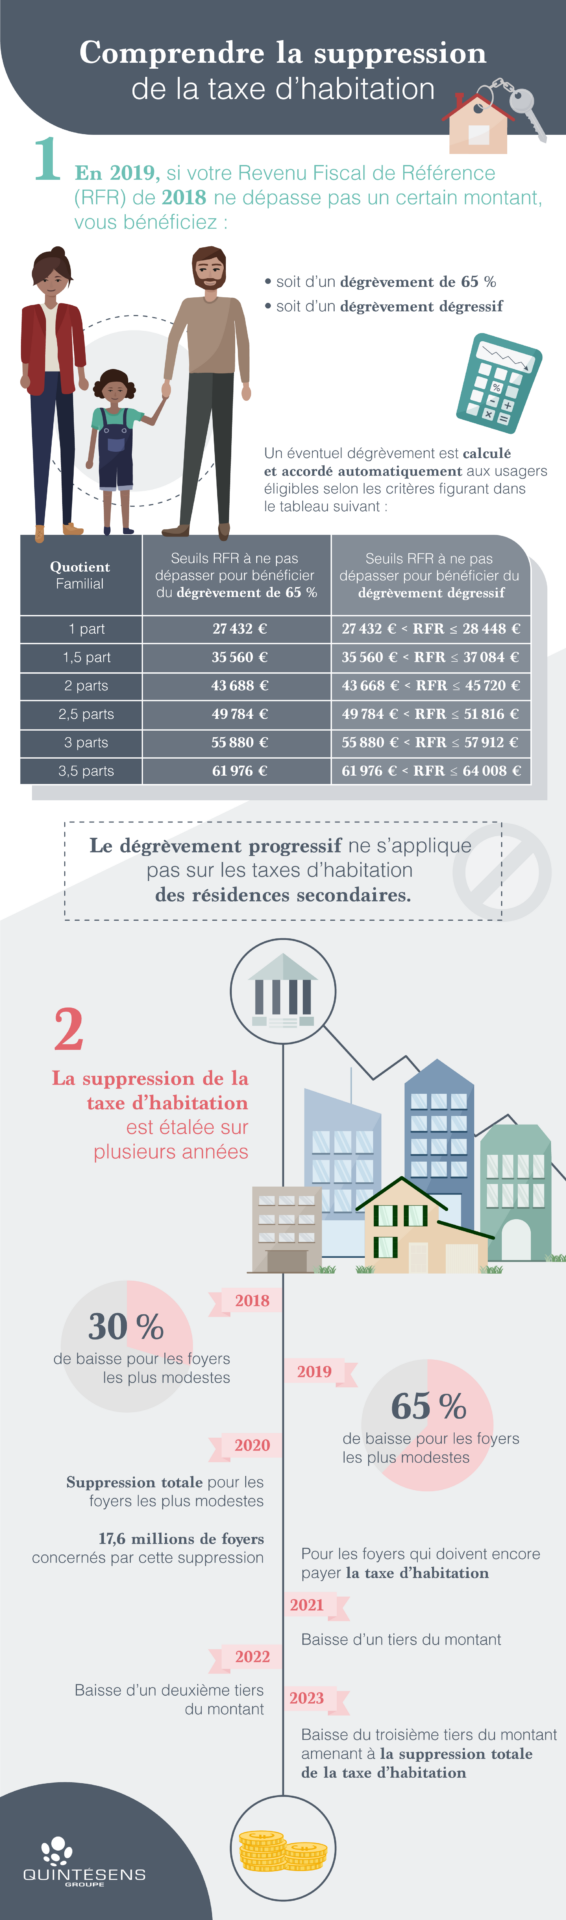 Comprendre le calendrier de suppression de la taxe d'habitation